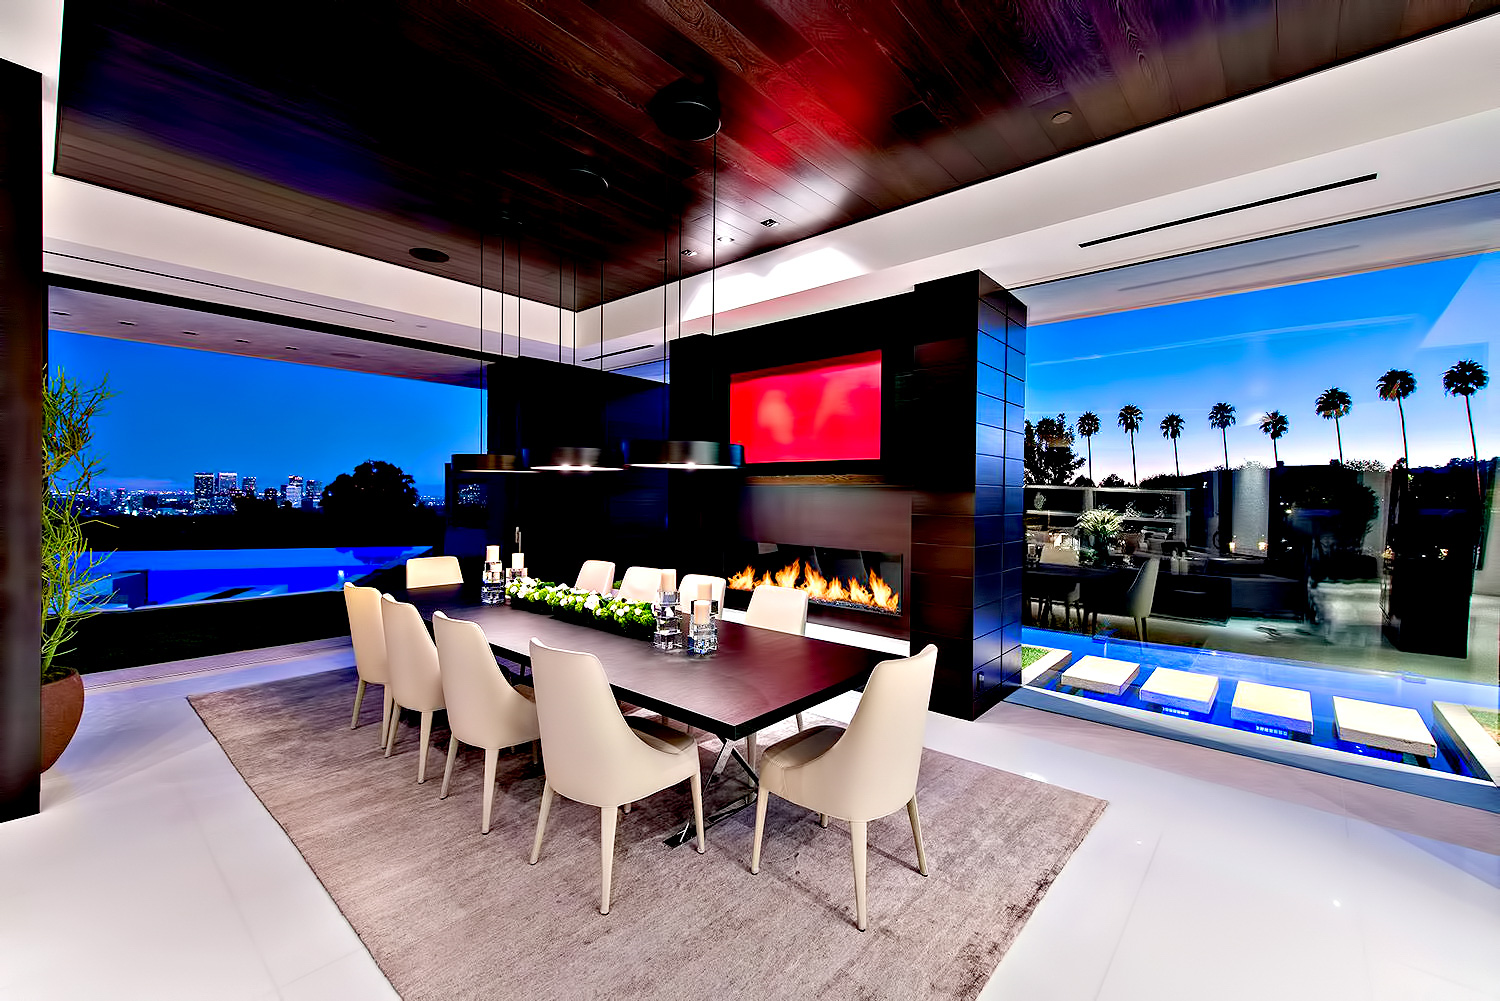 1201 Laurel Way Residence - Beverly Hills, CA, USA